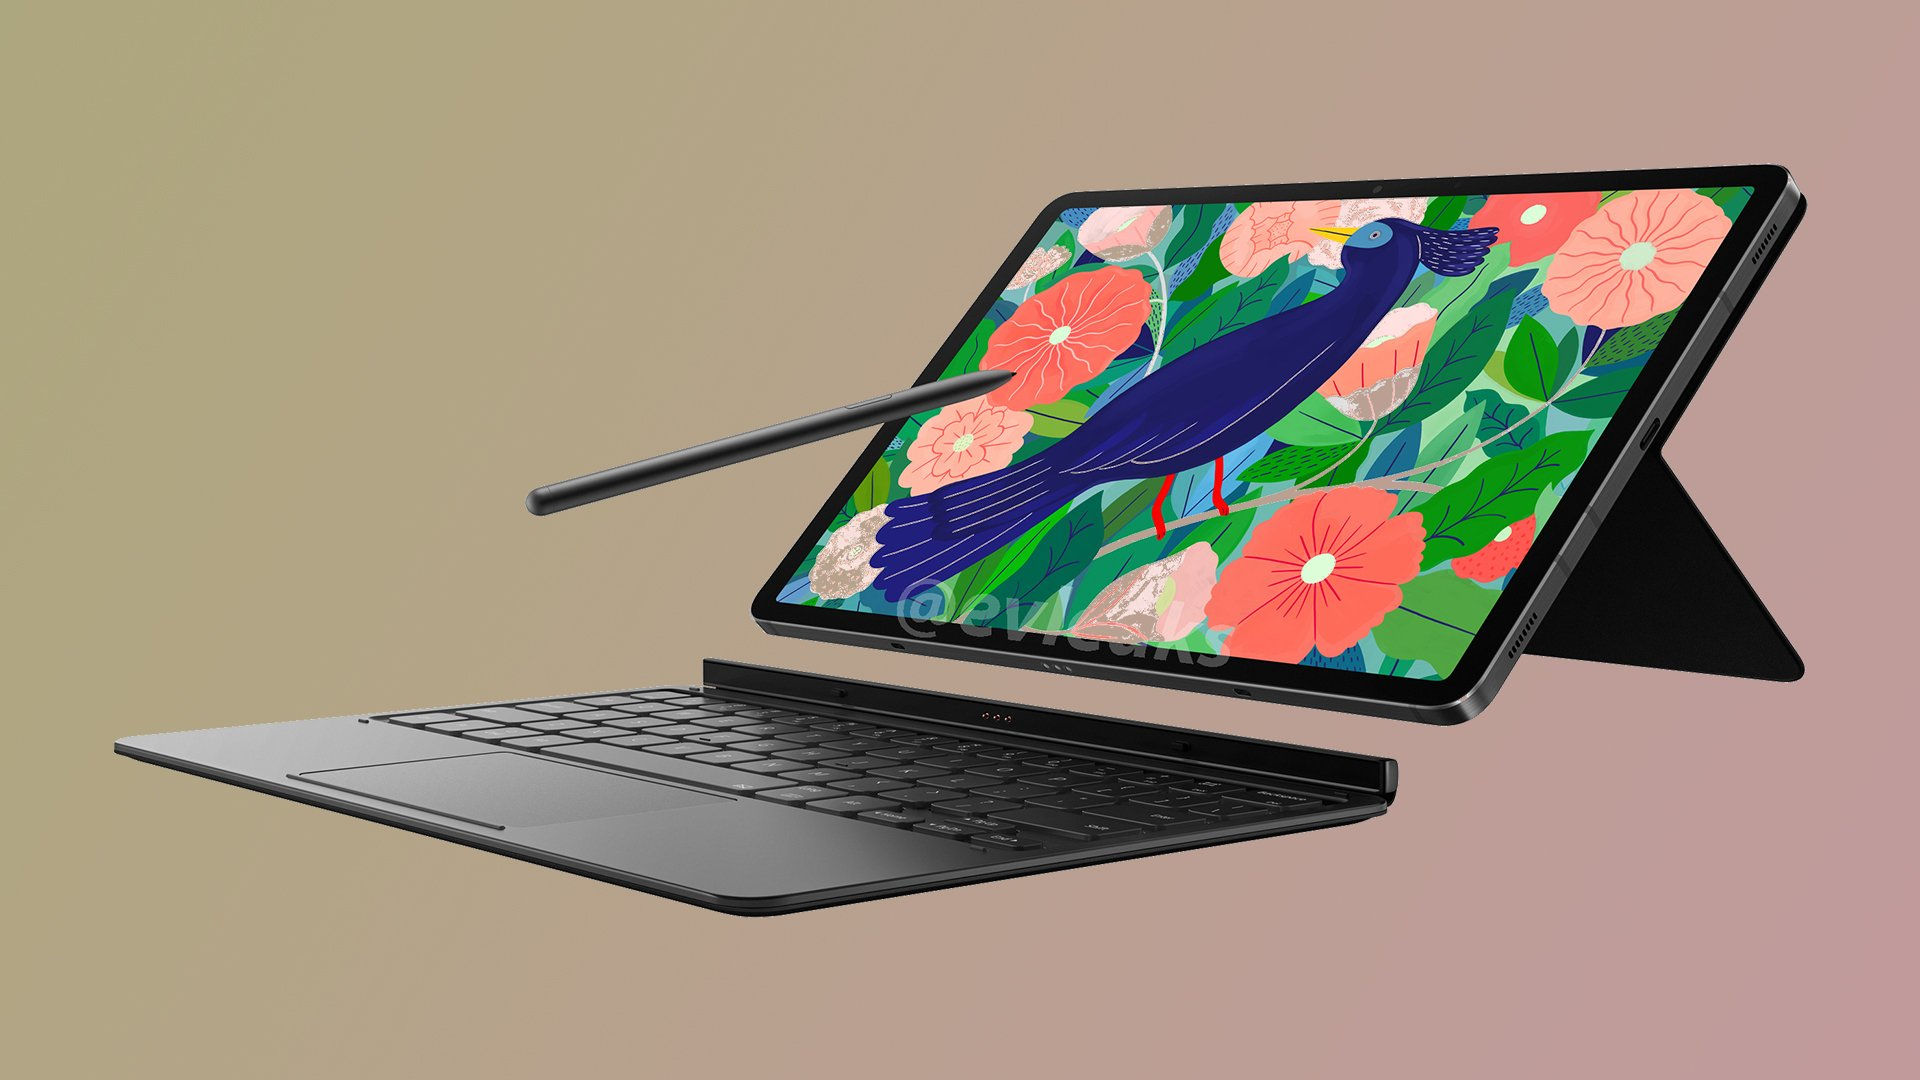 Samsung Galaxy Tab S7 With S Pen And Keyboard Cover Press Render